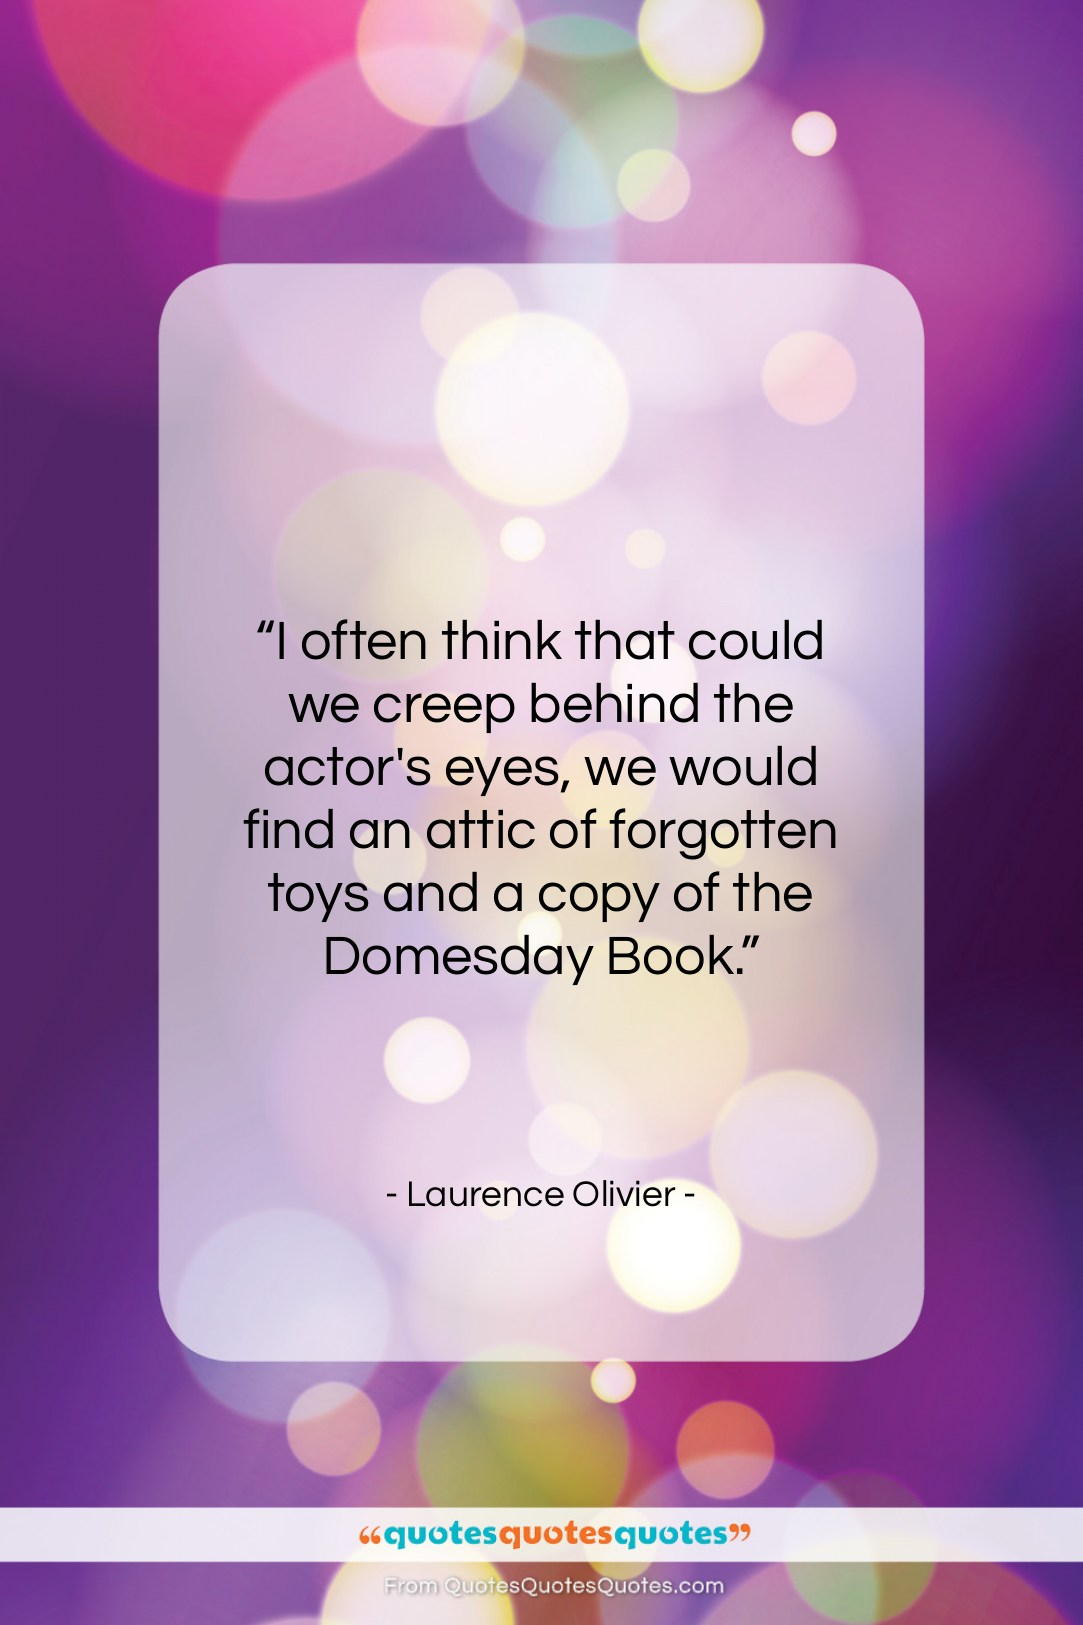 """Laurence Olivier quote: """"I often think that could we creep…""""- at QuotesQuotesQuotes.com"""